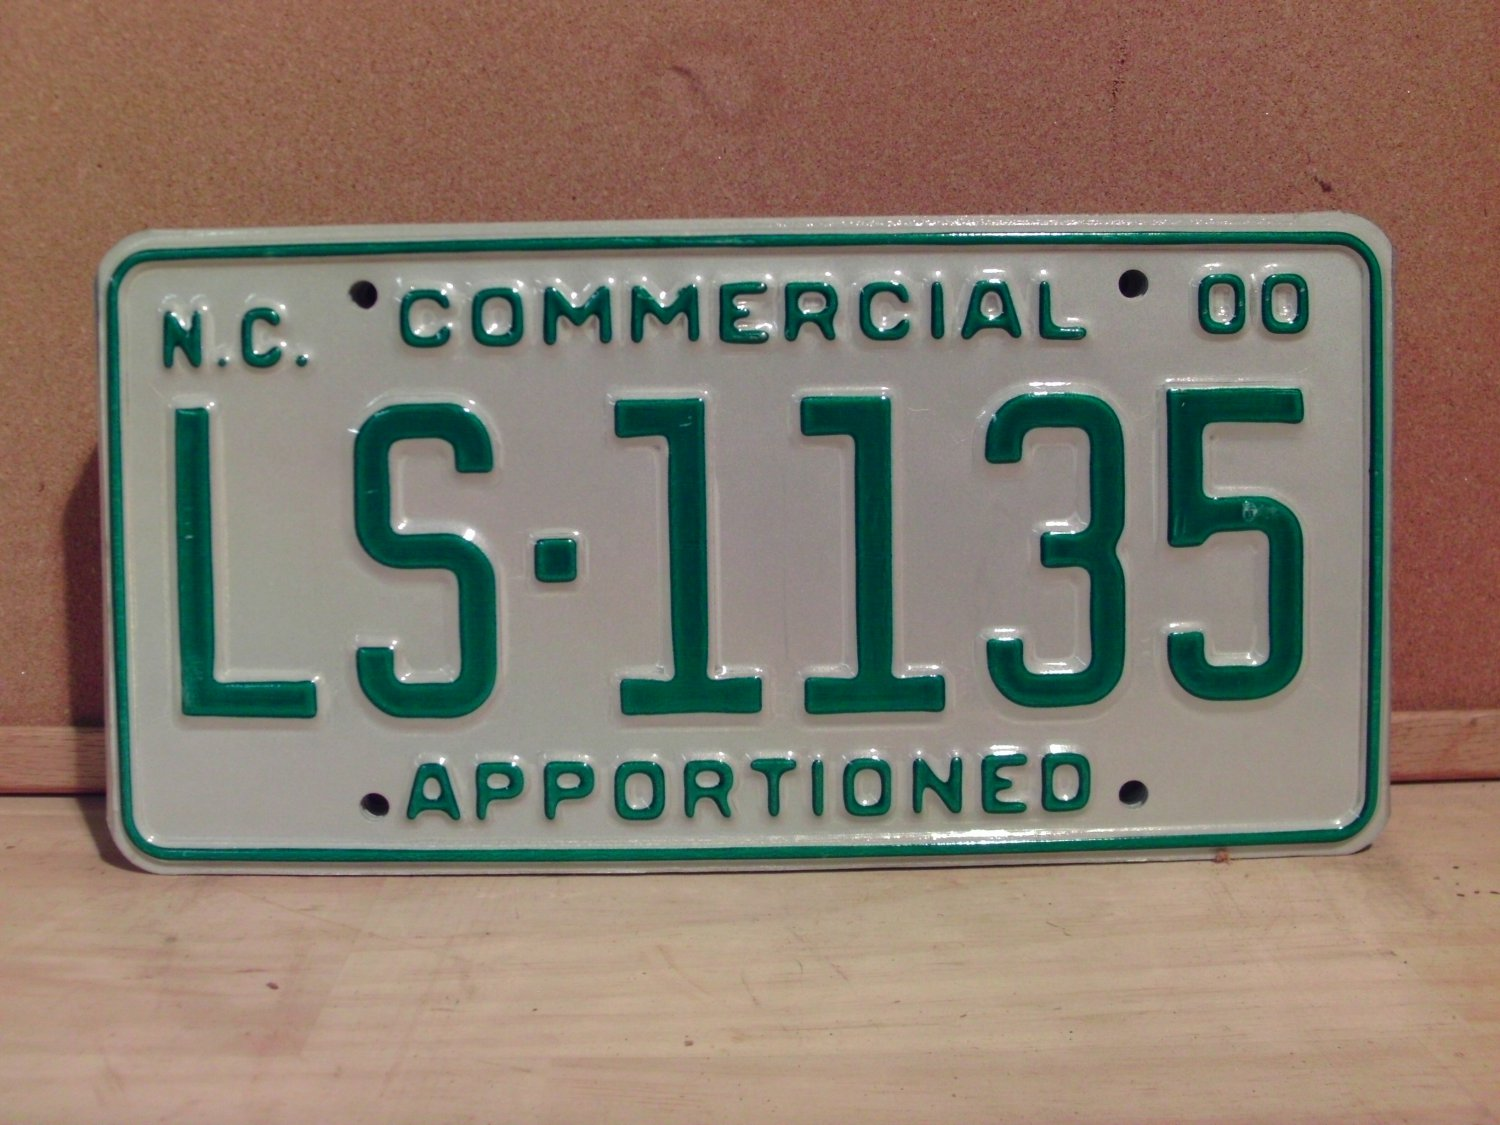 2000 North Carolina Apportioned Truck License Plate Mint NC #LS-1135